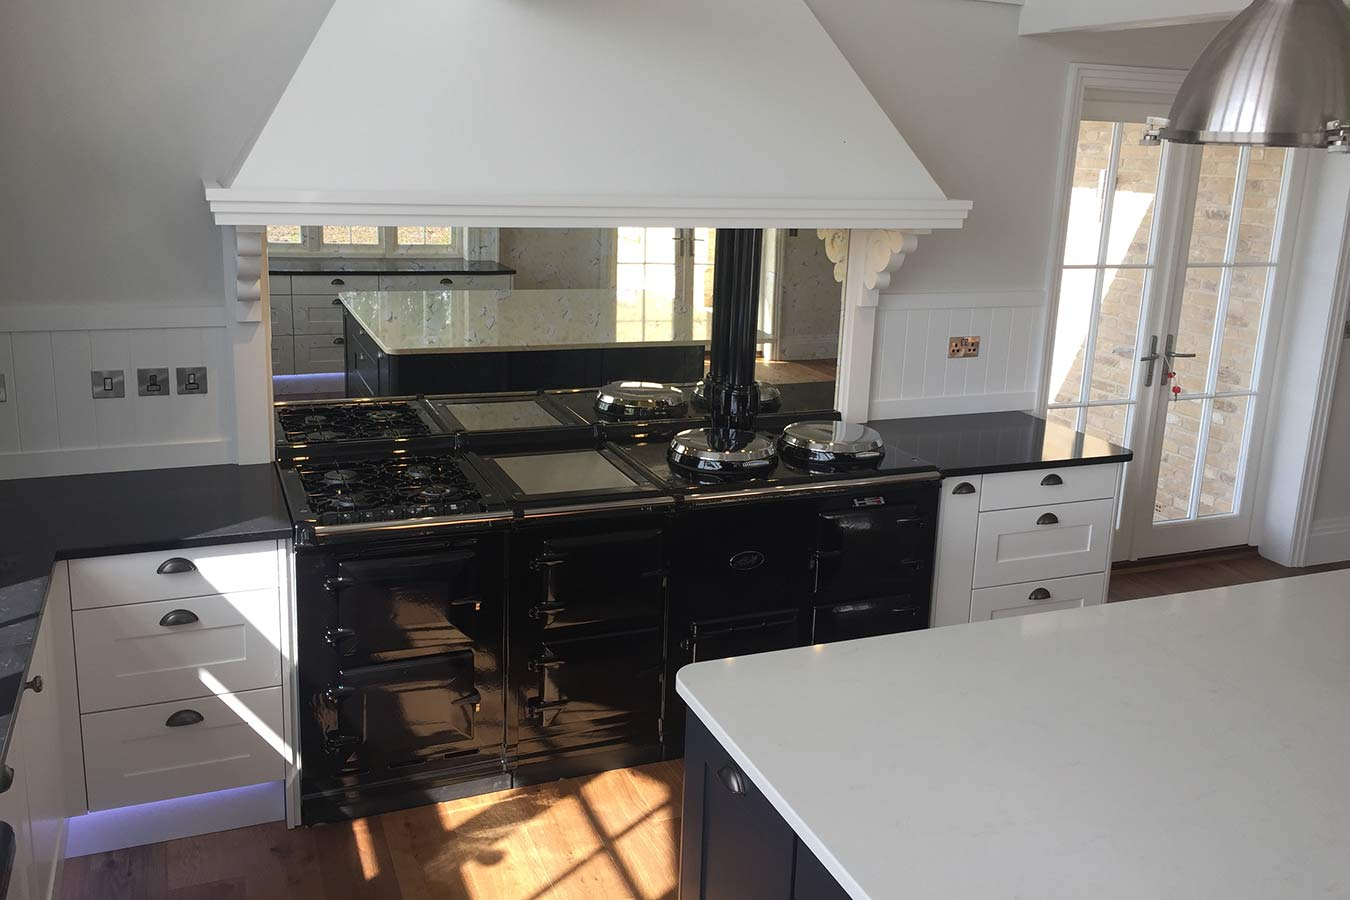 Masterclass Kitchens Mirror Splashback in a Shaker Kitchen